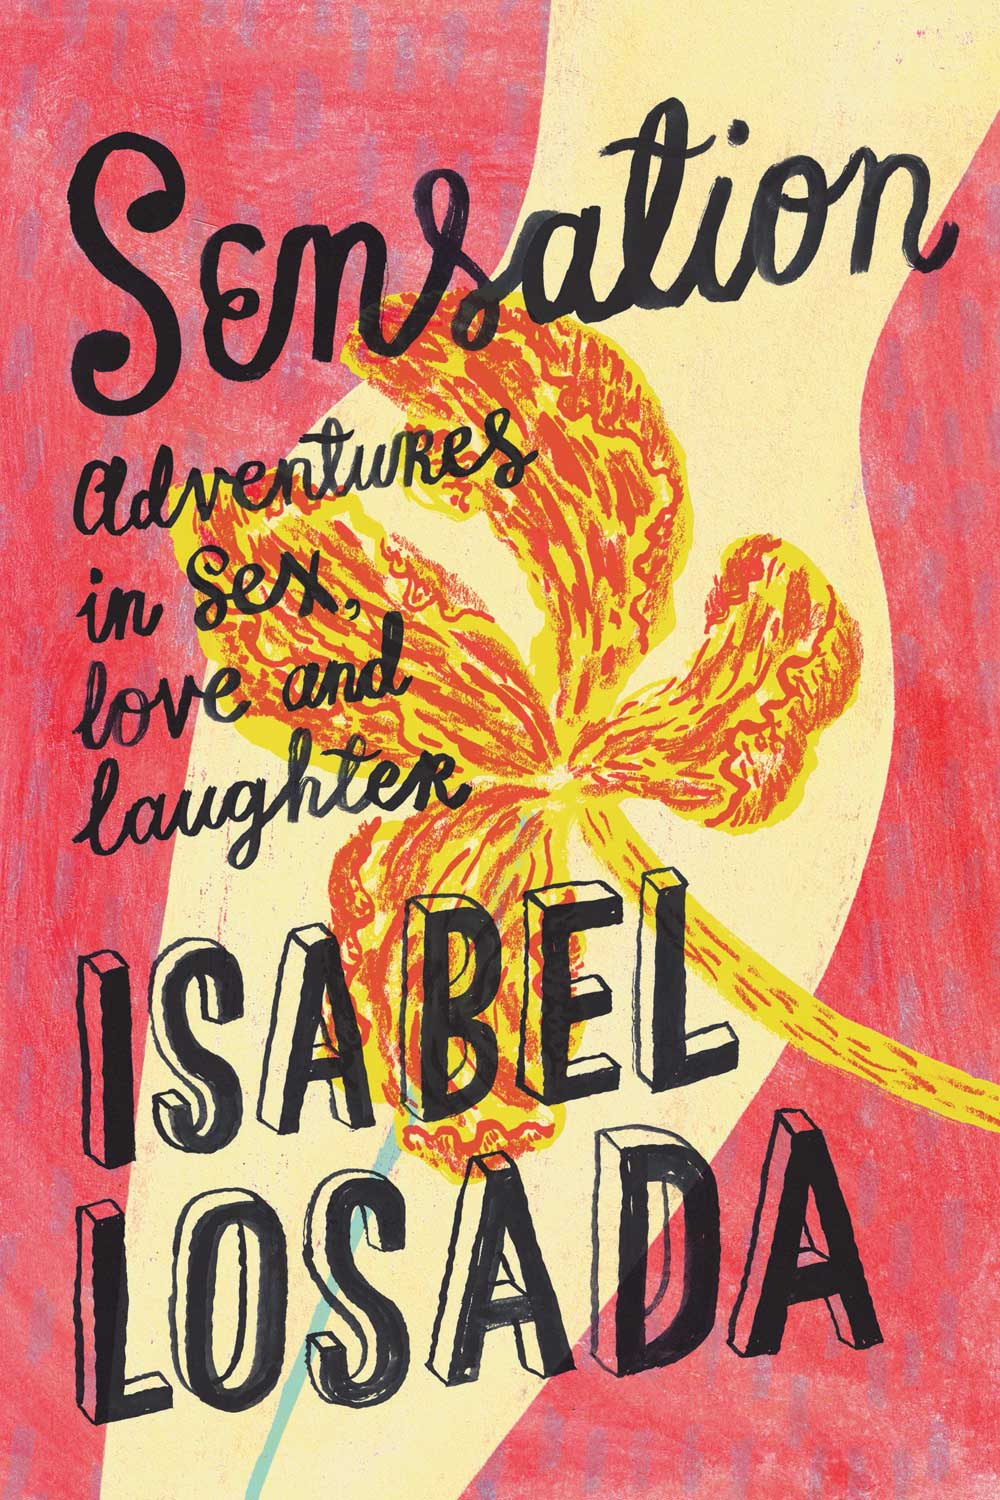 Isabel Losada author website